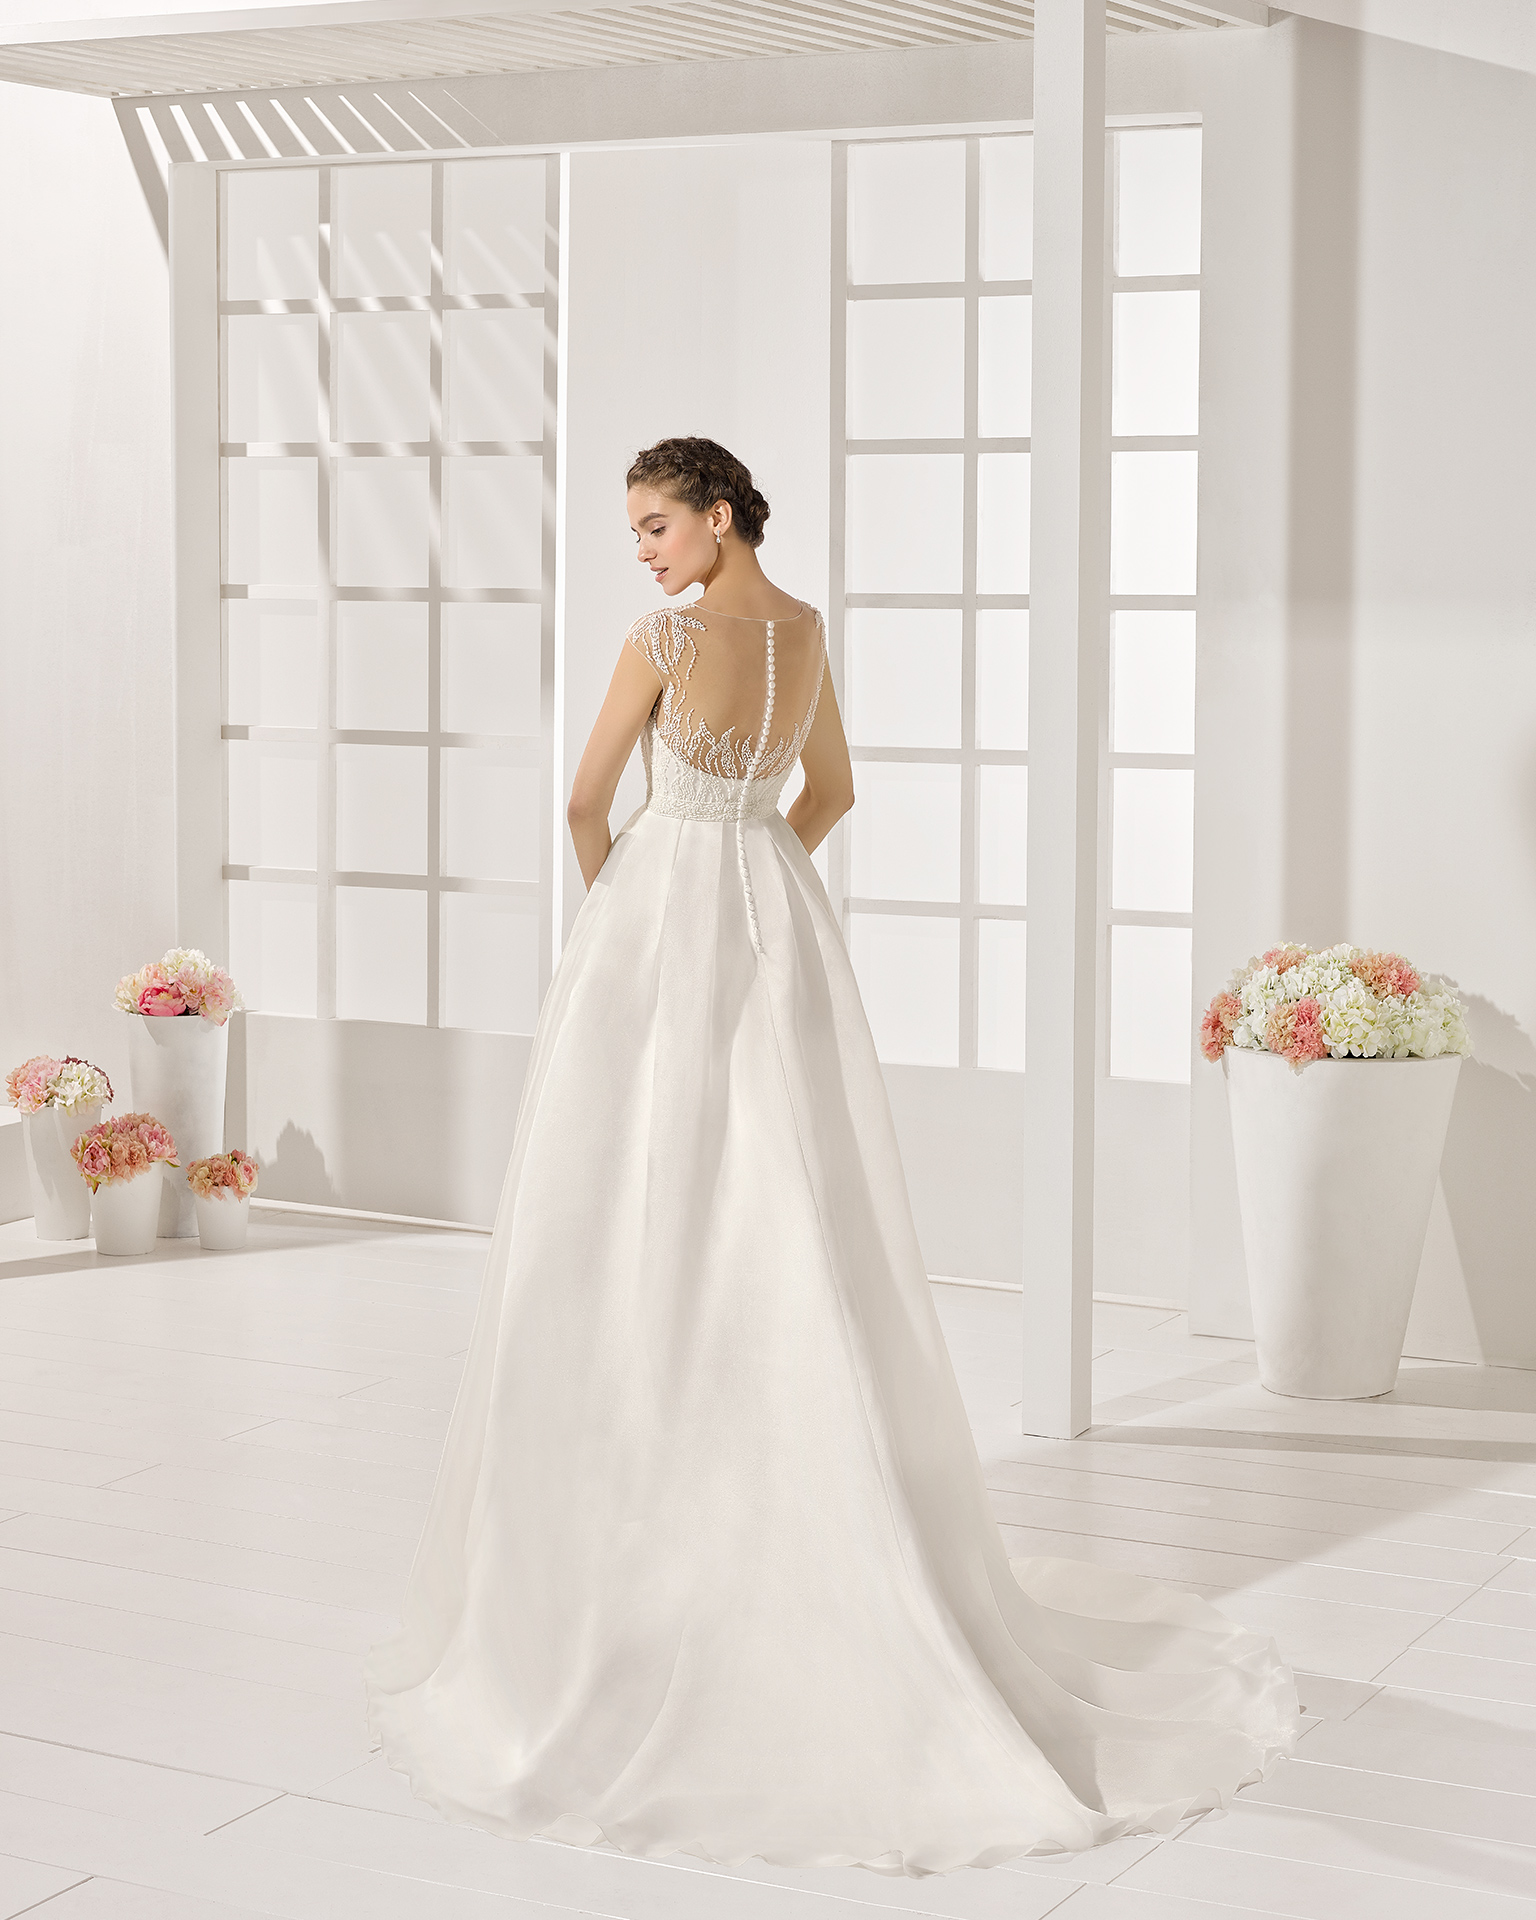 Ysai wedding dress, Luna Novias 2017